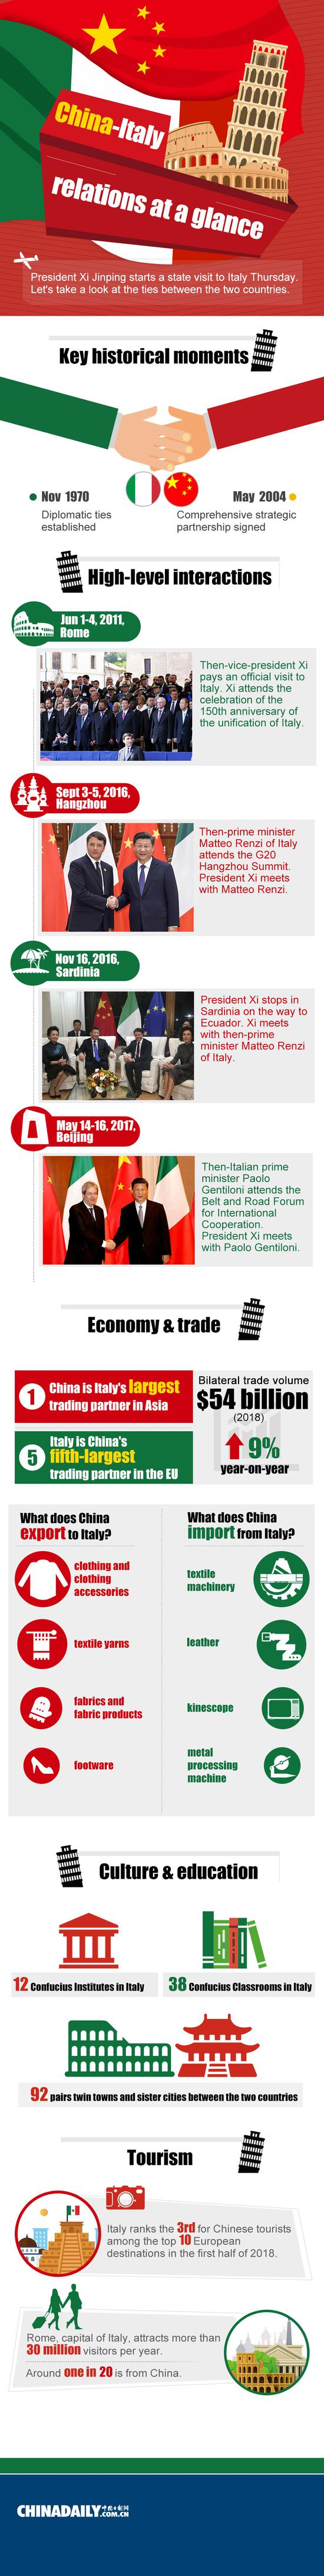 Overview of China and Italy relations